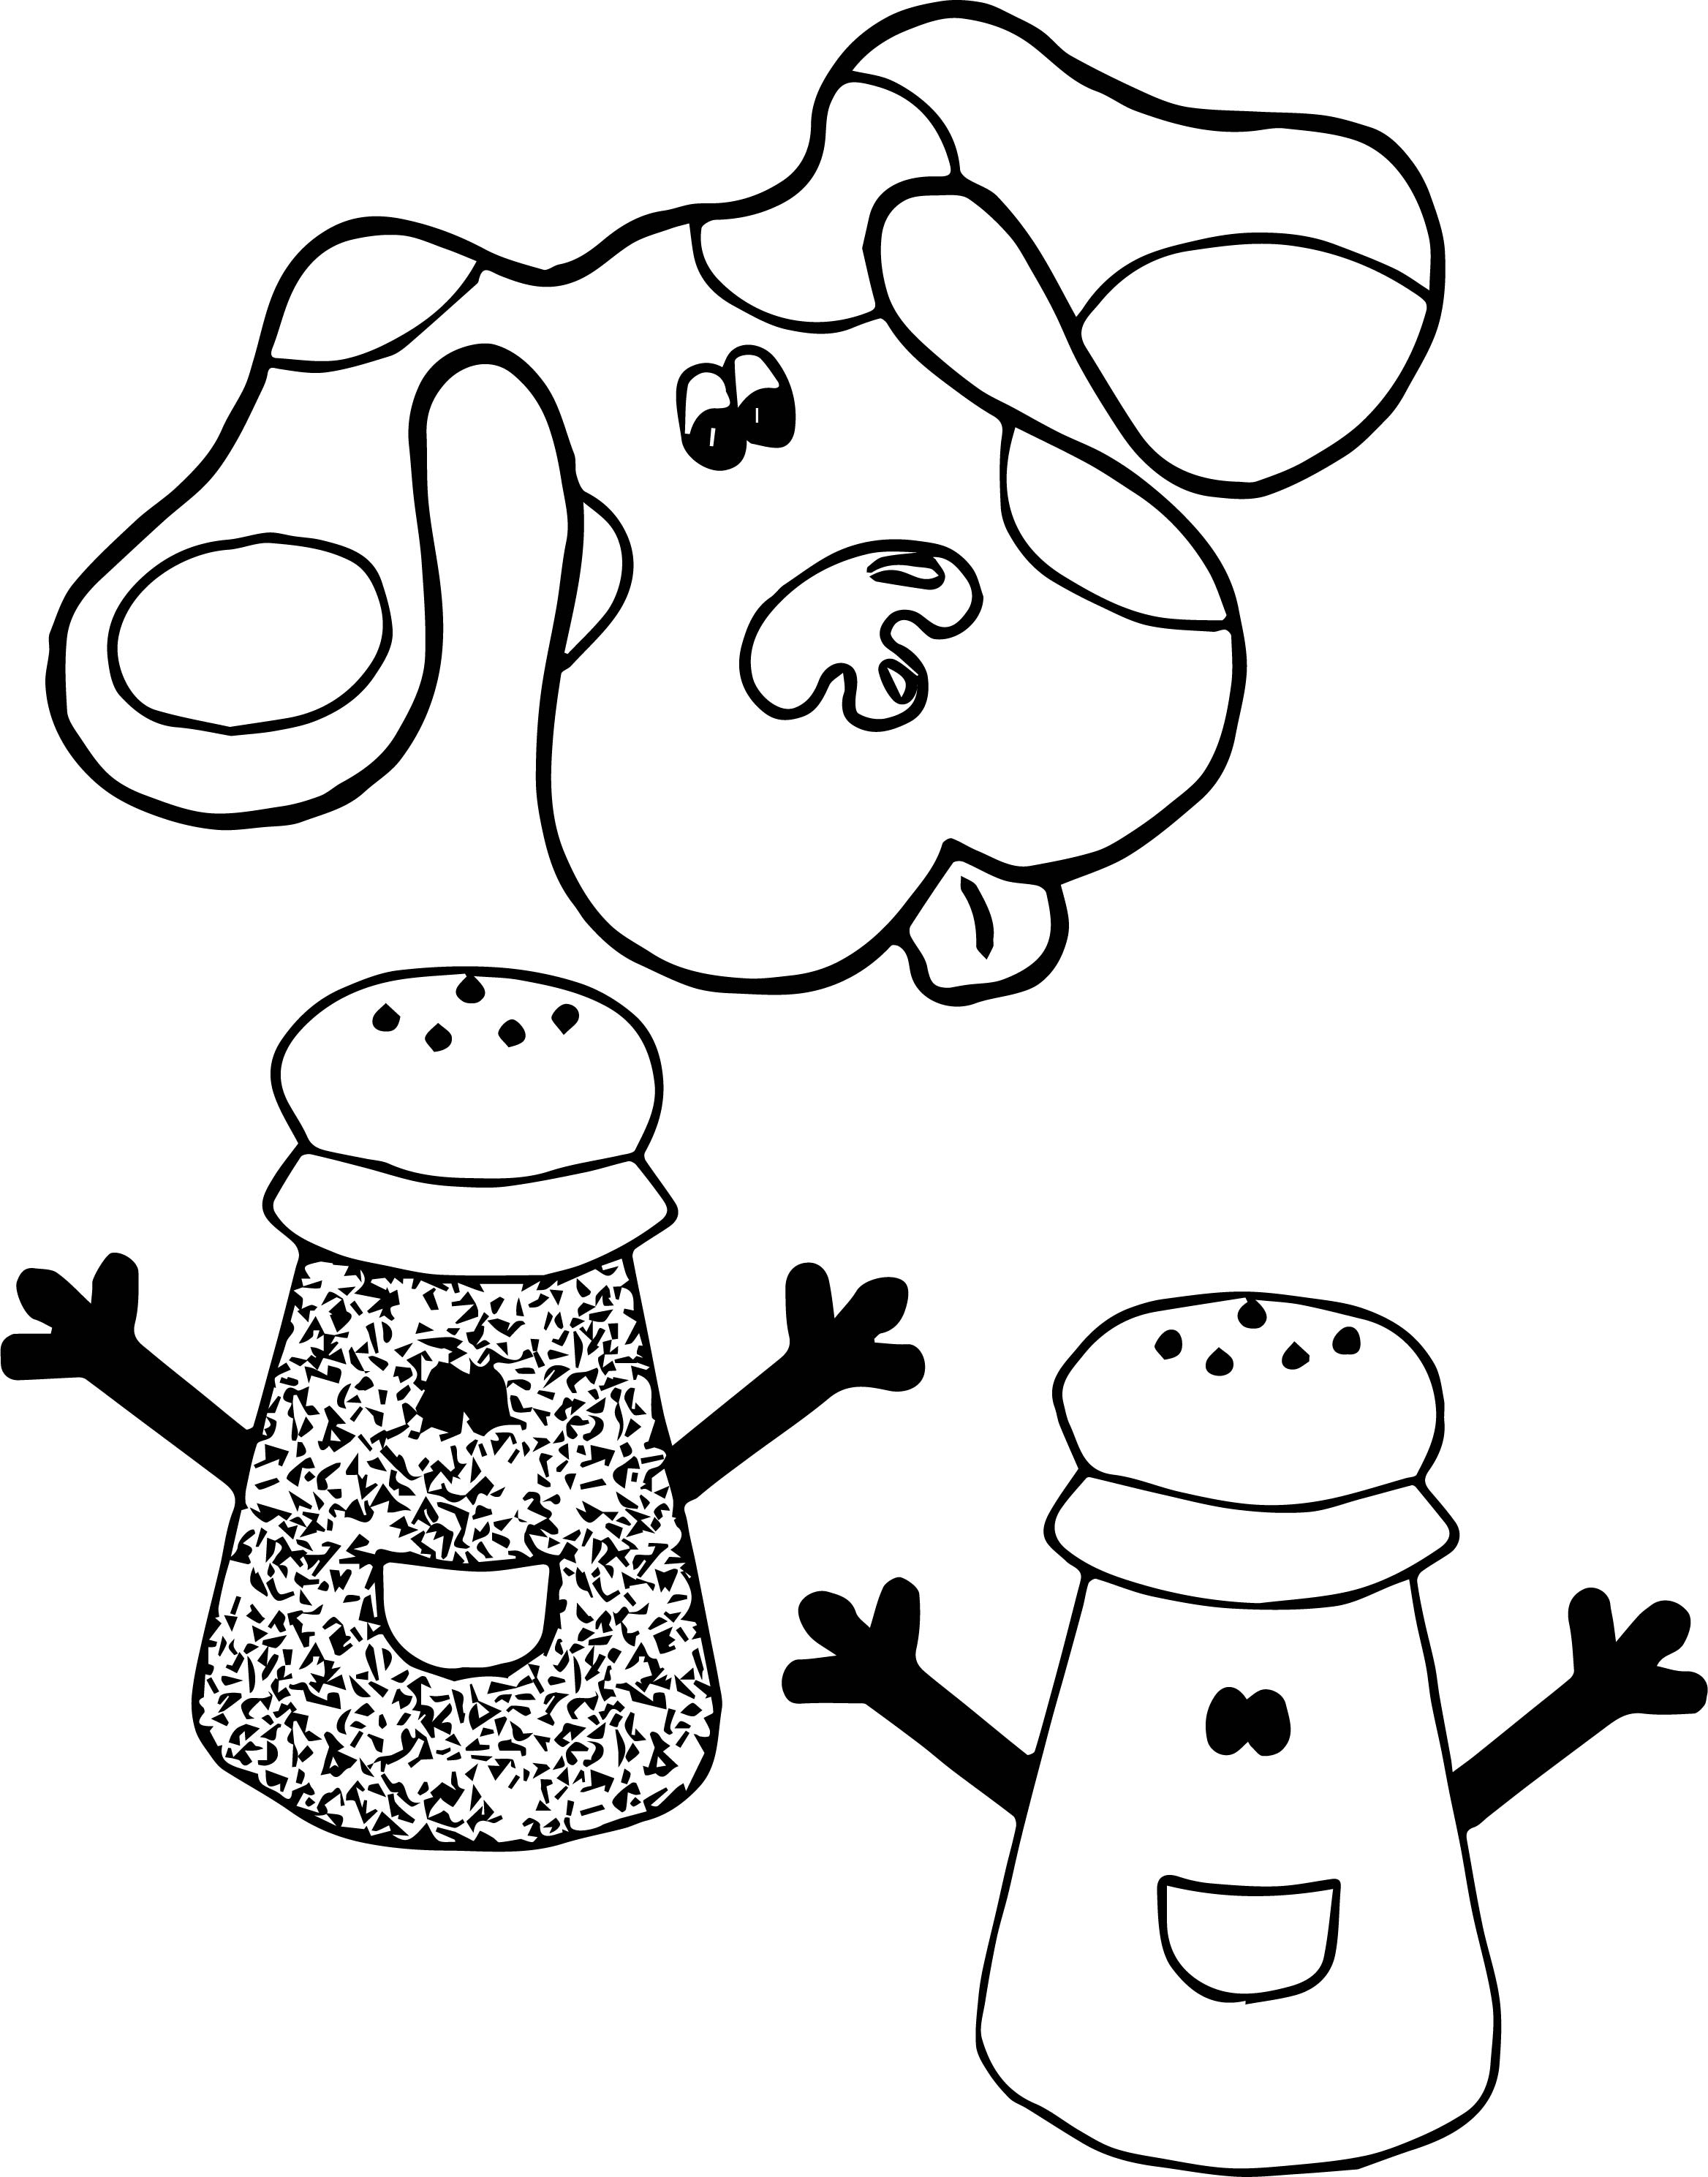 Blue's Clues Salt Coloring Page